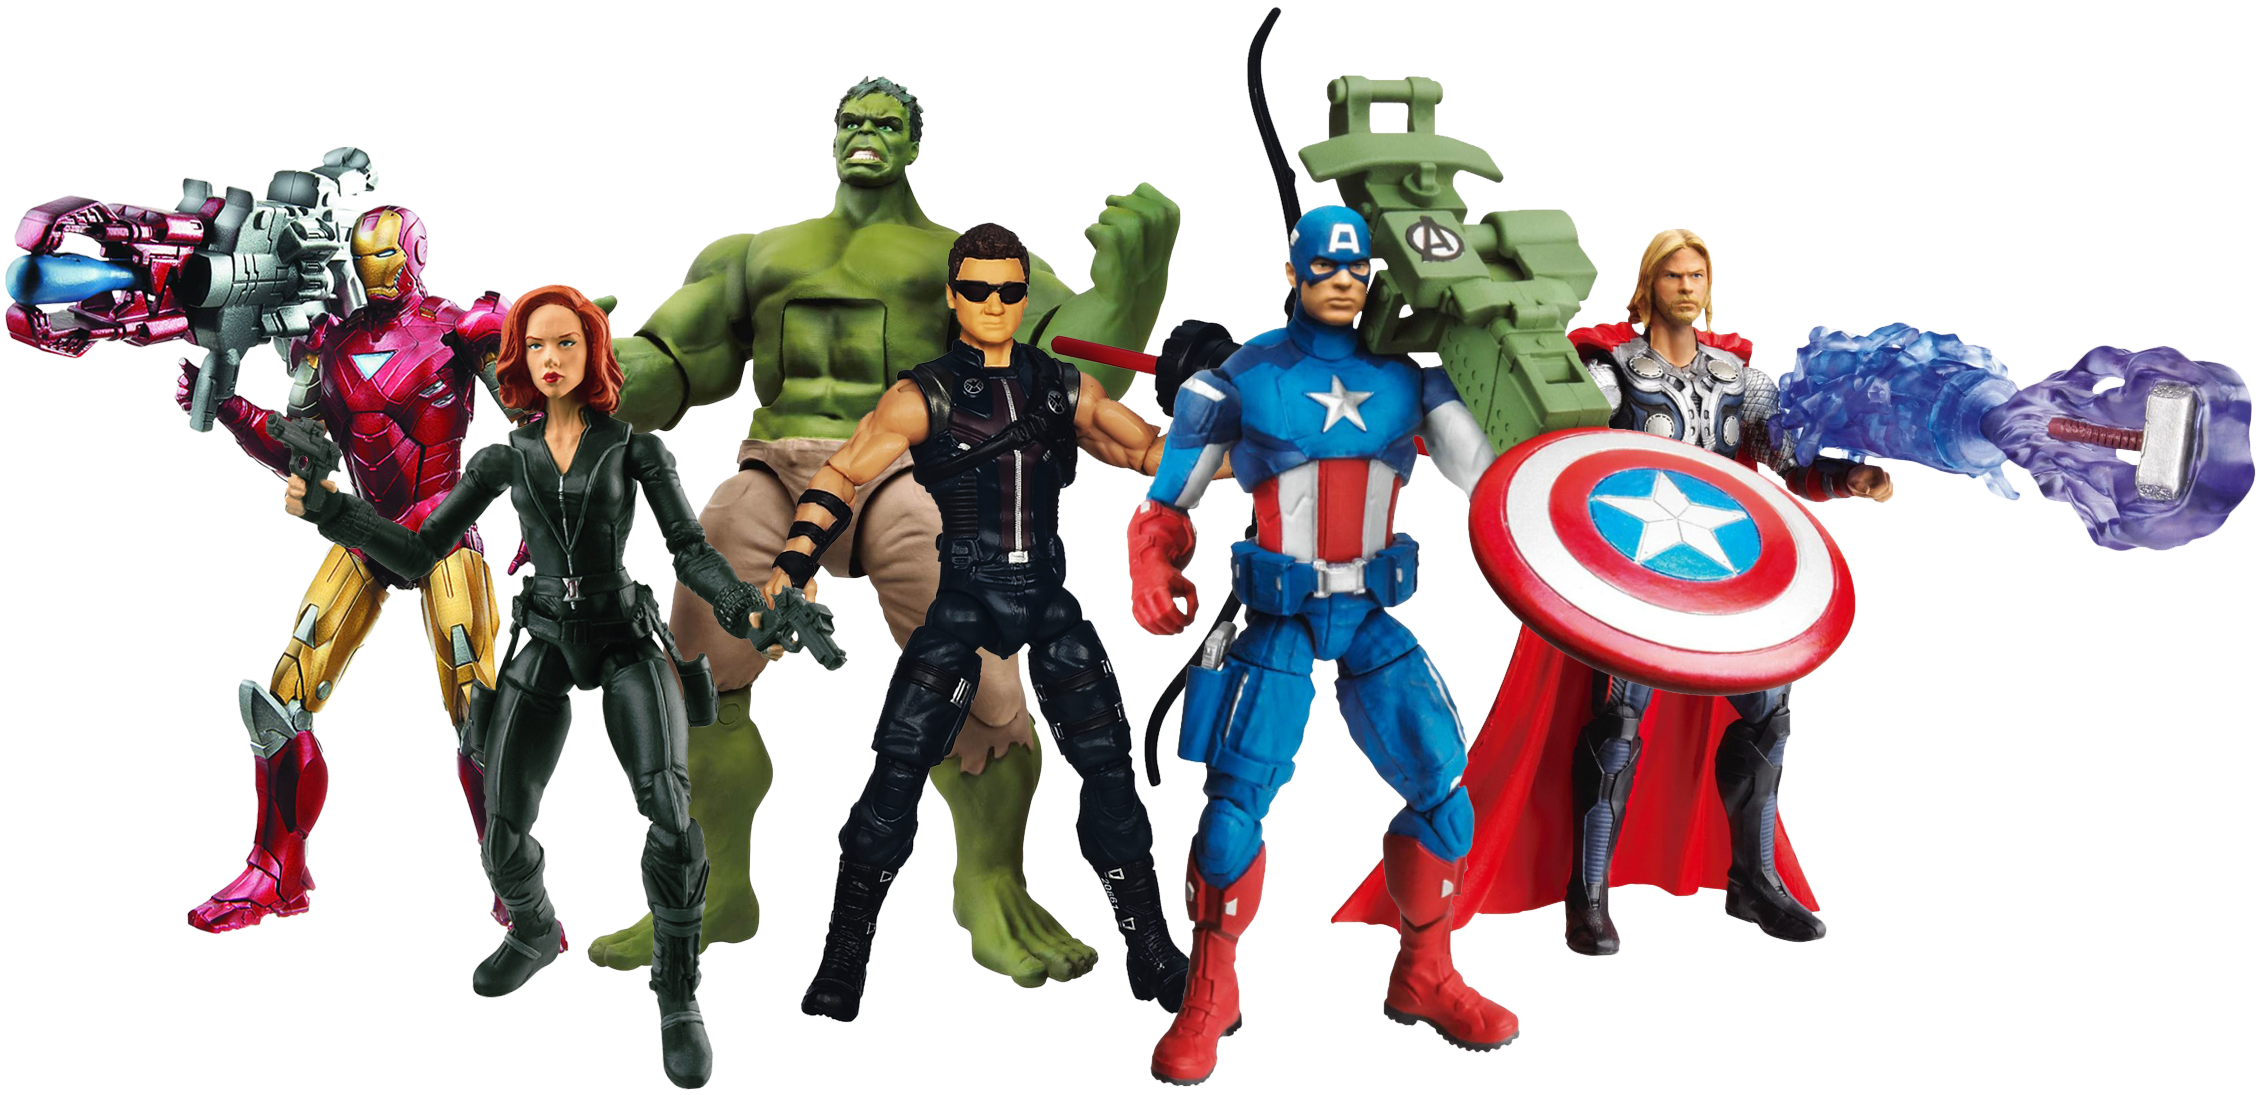 Avengers clipart justice league. Marvel panda free images